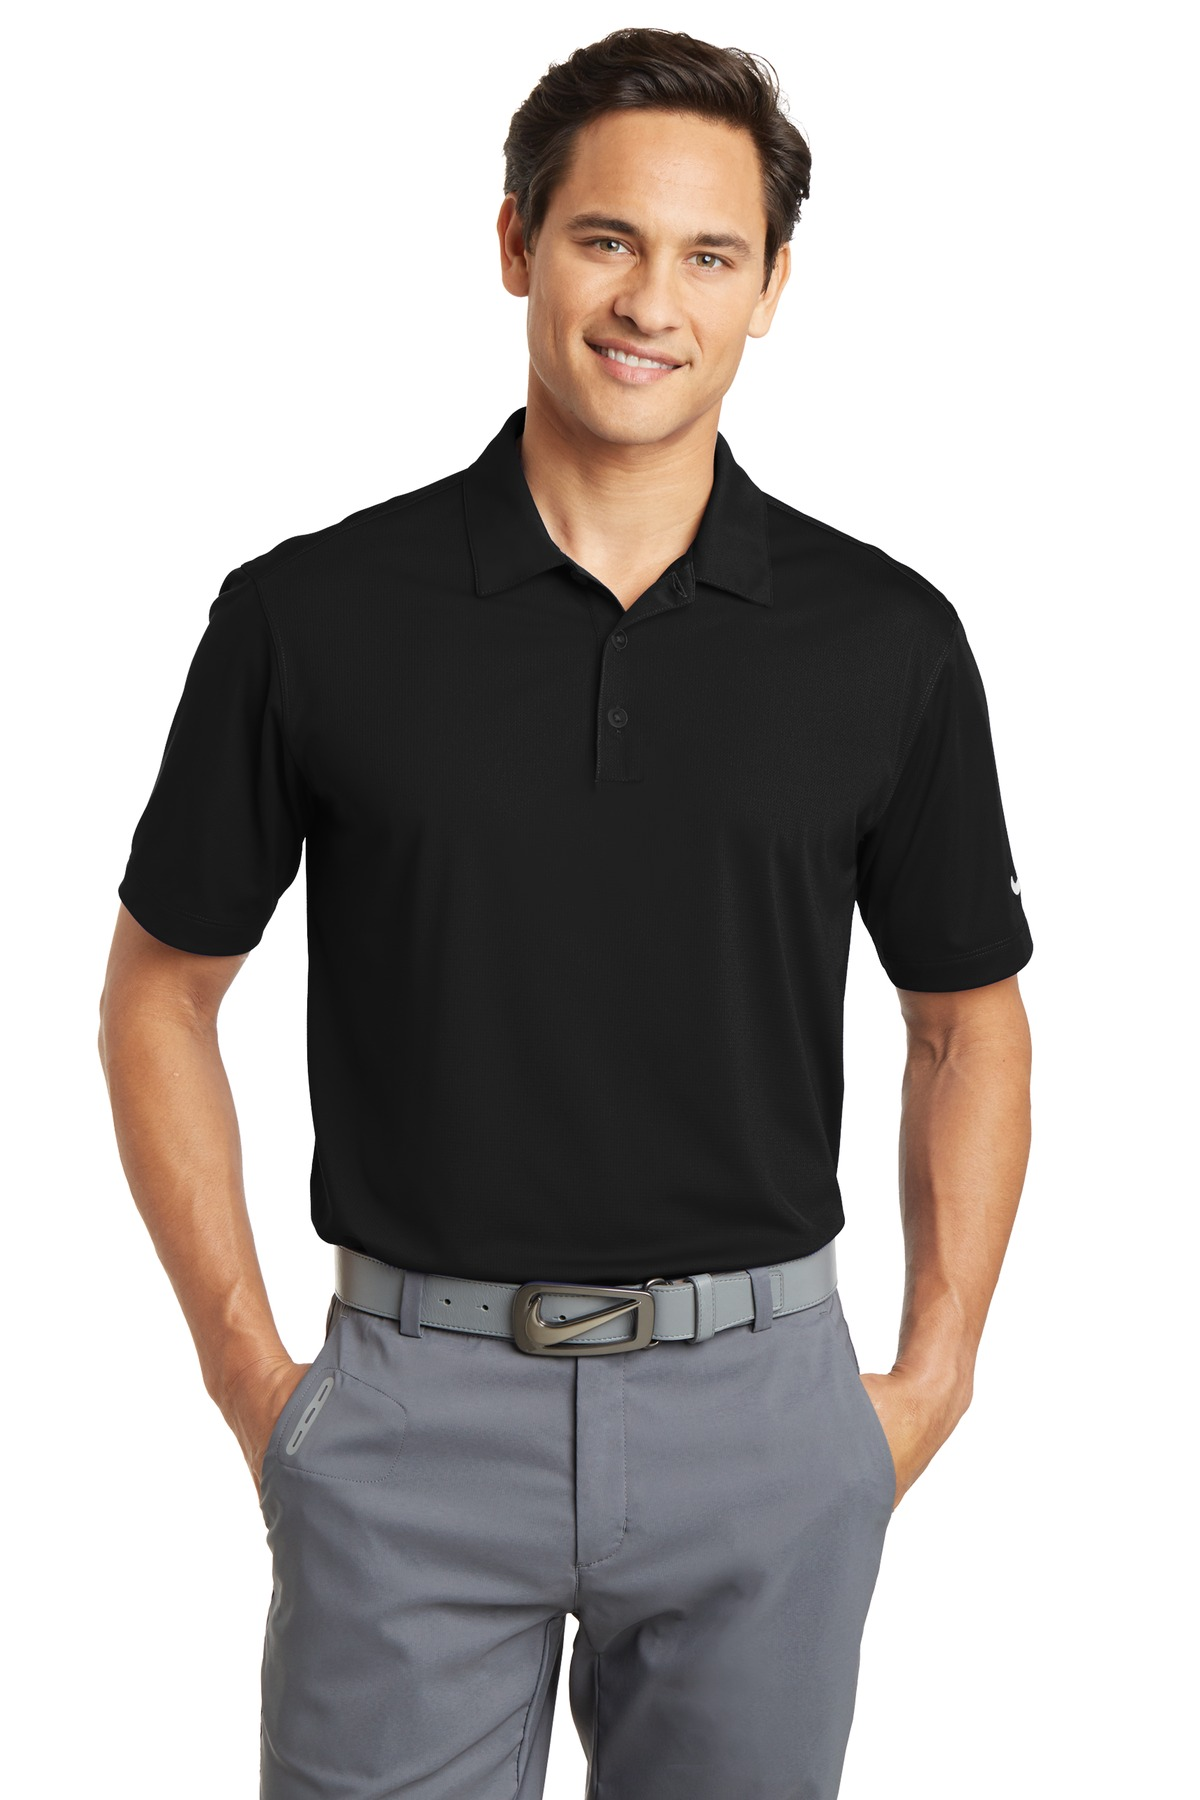 Nike Dri-FIT Vertical Mesh Polo. 637167 - Black